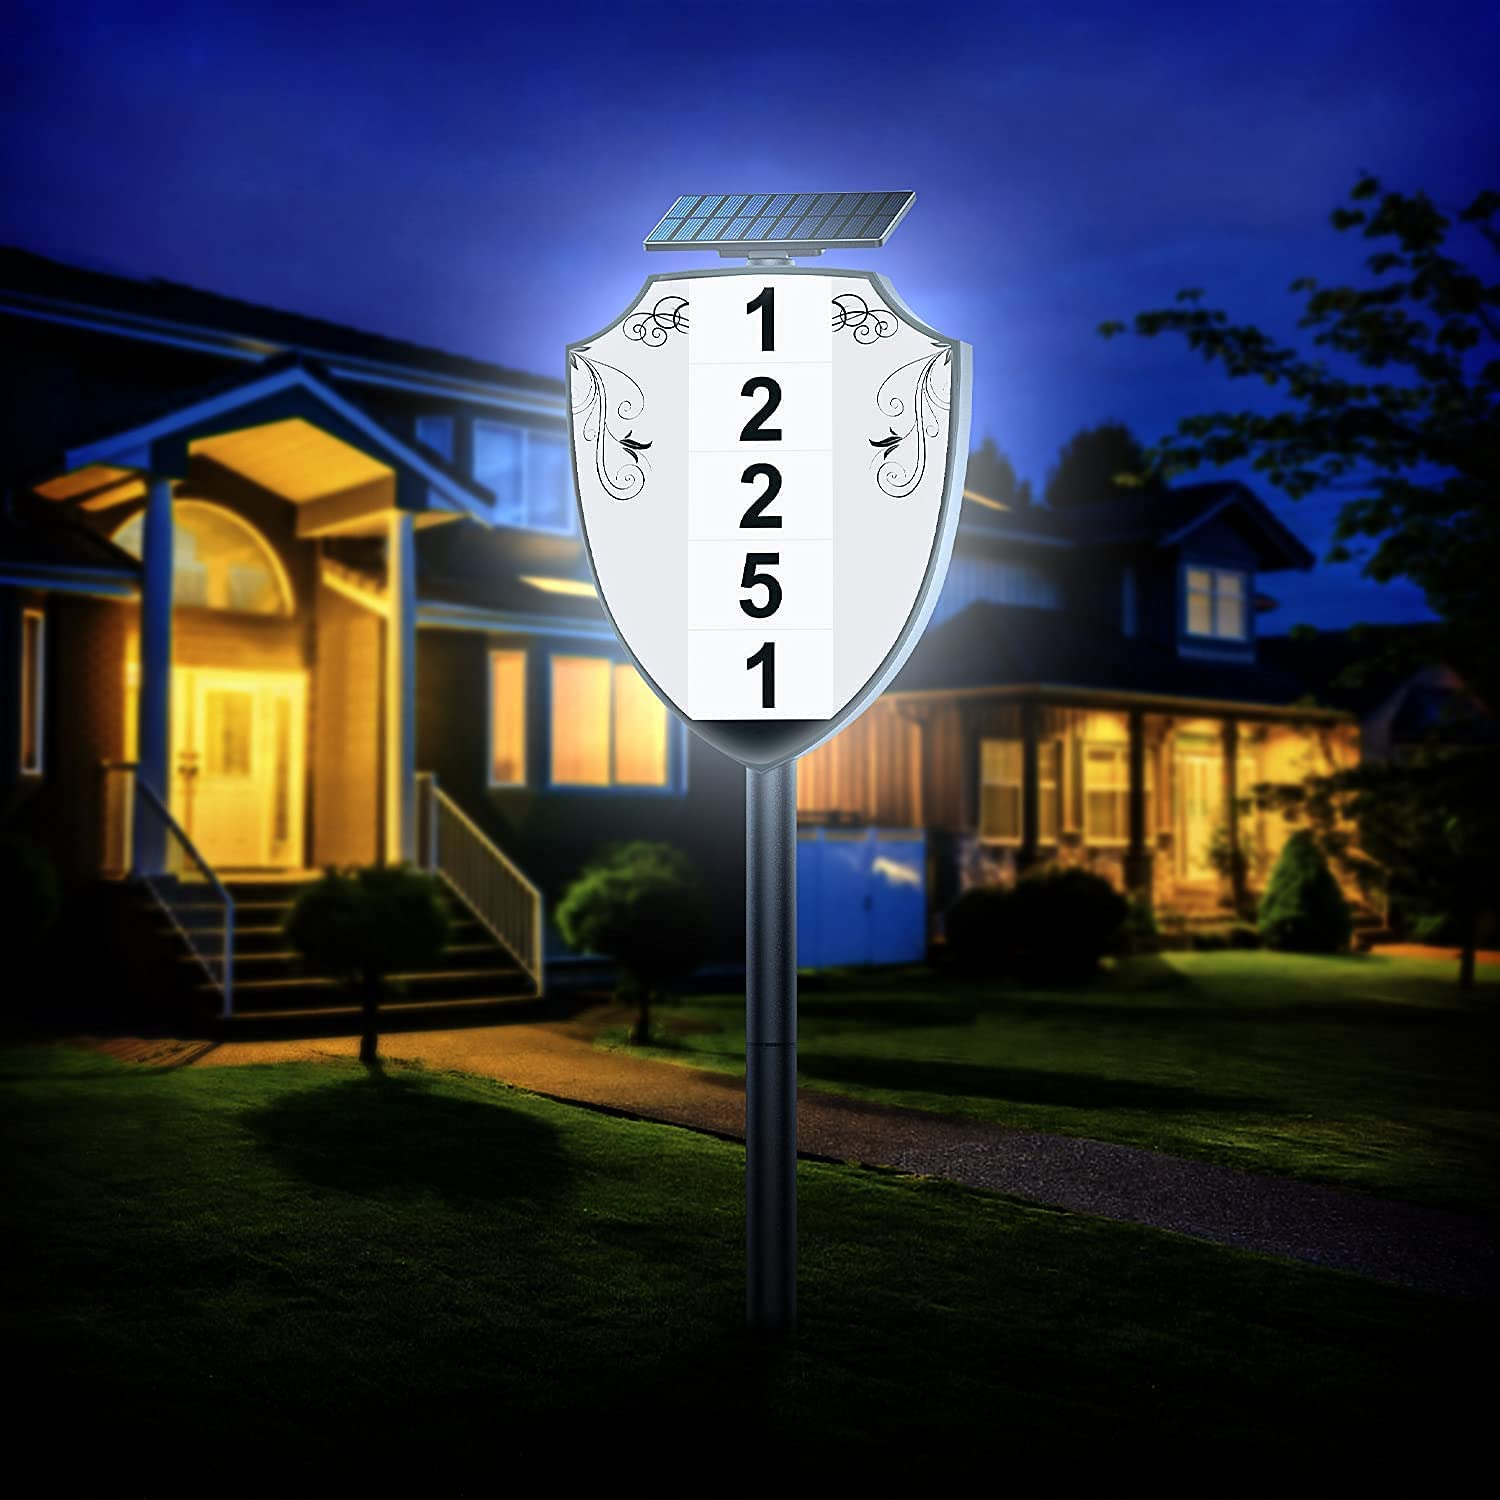 BNT Lighted House Numbers for Outside, Waterproof Solar Address Sign Lights Outdoor Address Plaque for Yard, Street, Home, Garden